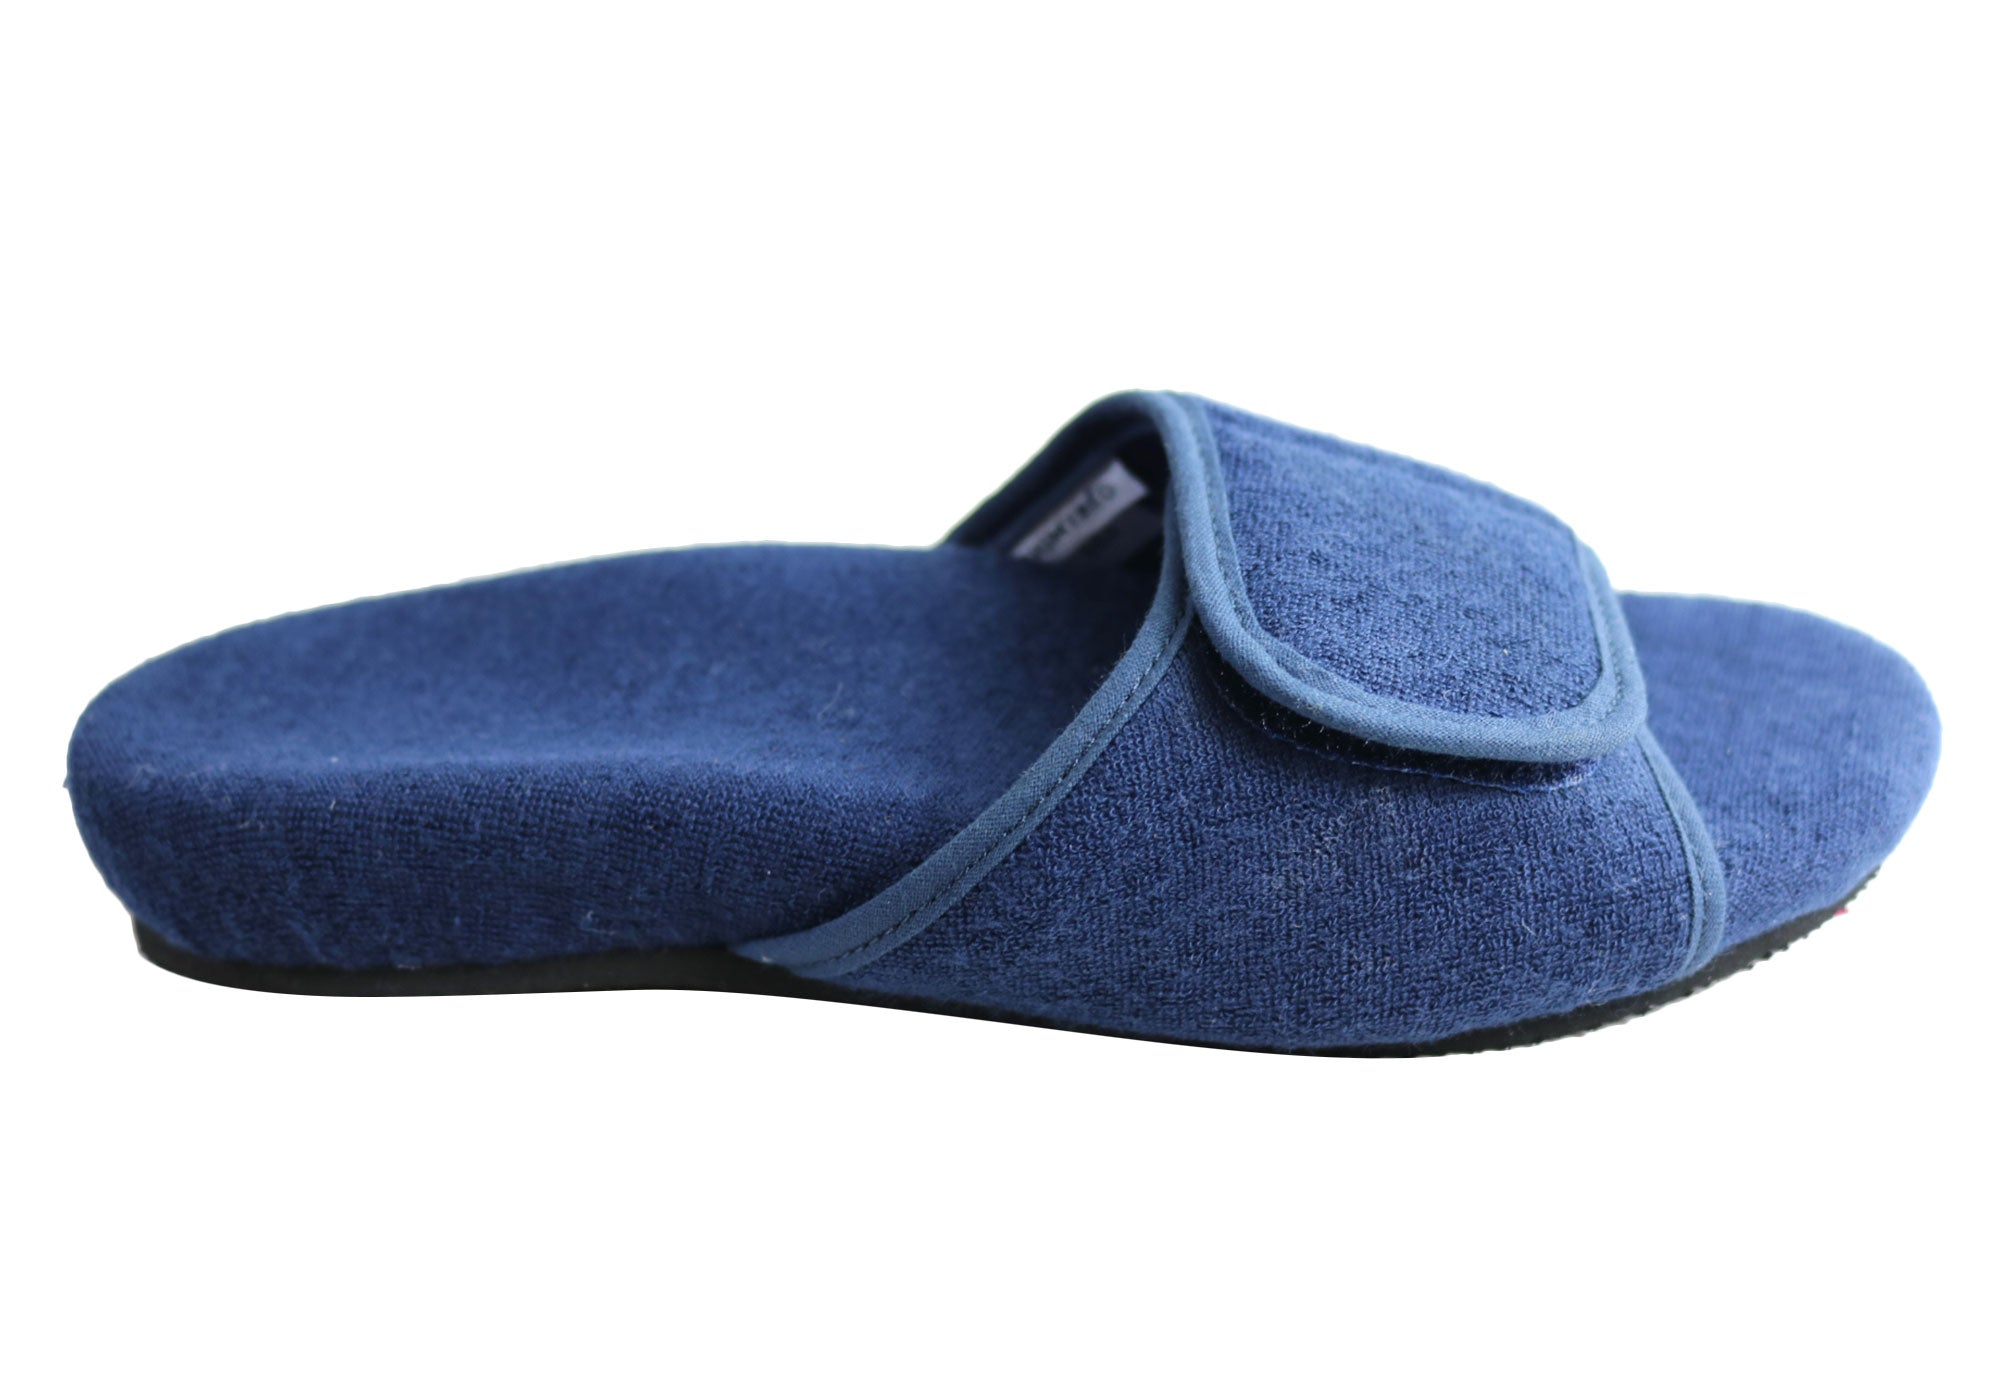 Brand New Homyped Snug 2 Womens Supportive Comfortable Open Toe Slippers